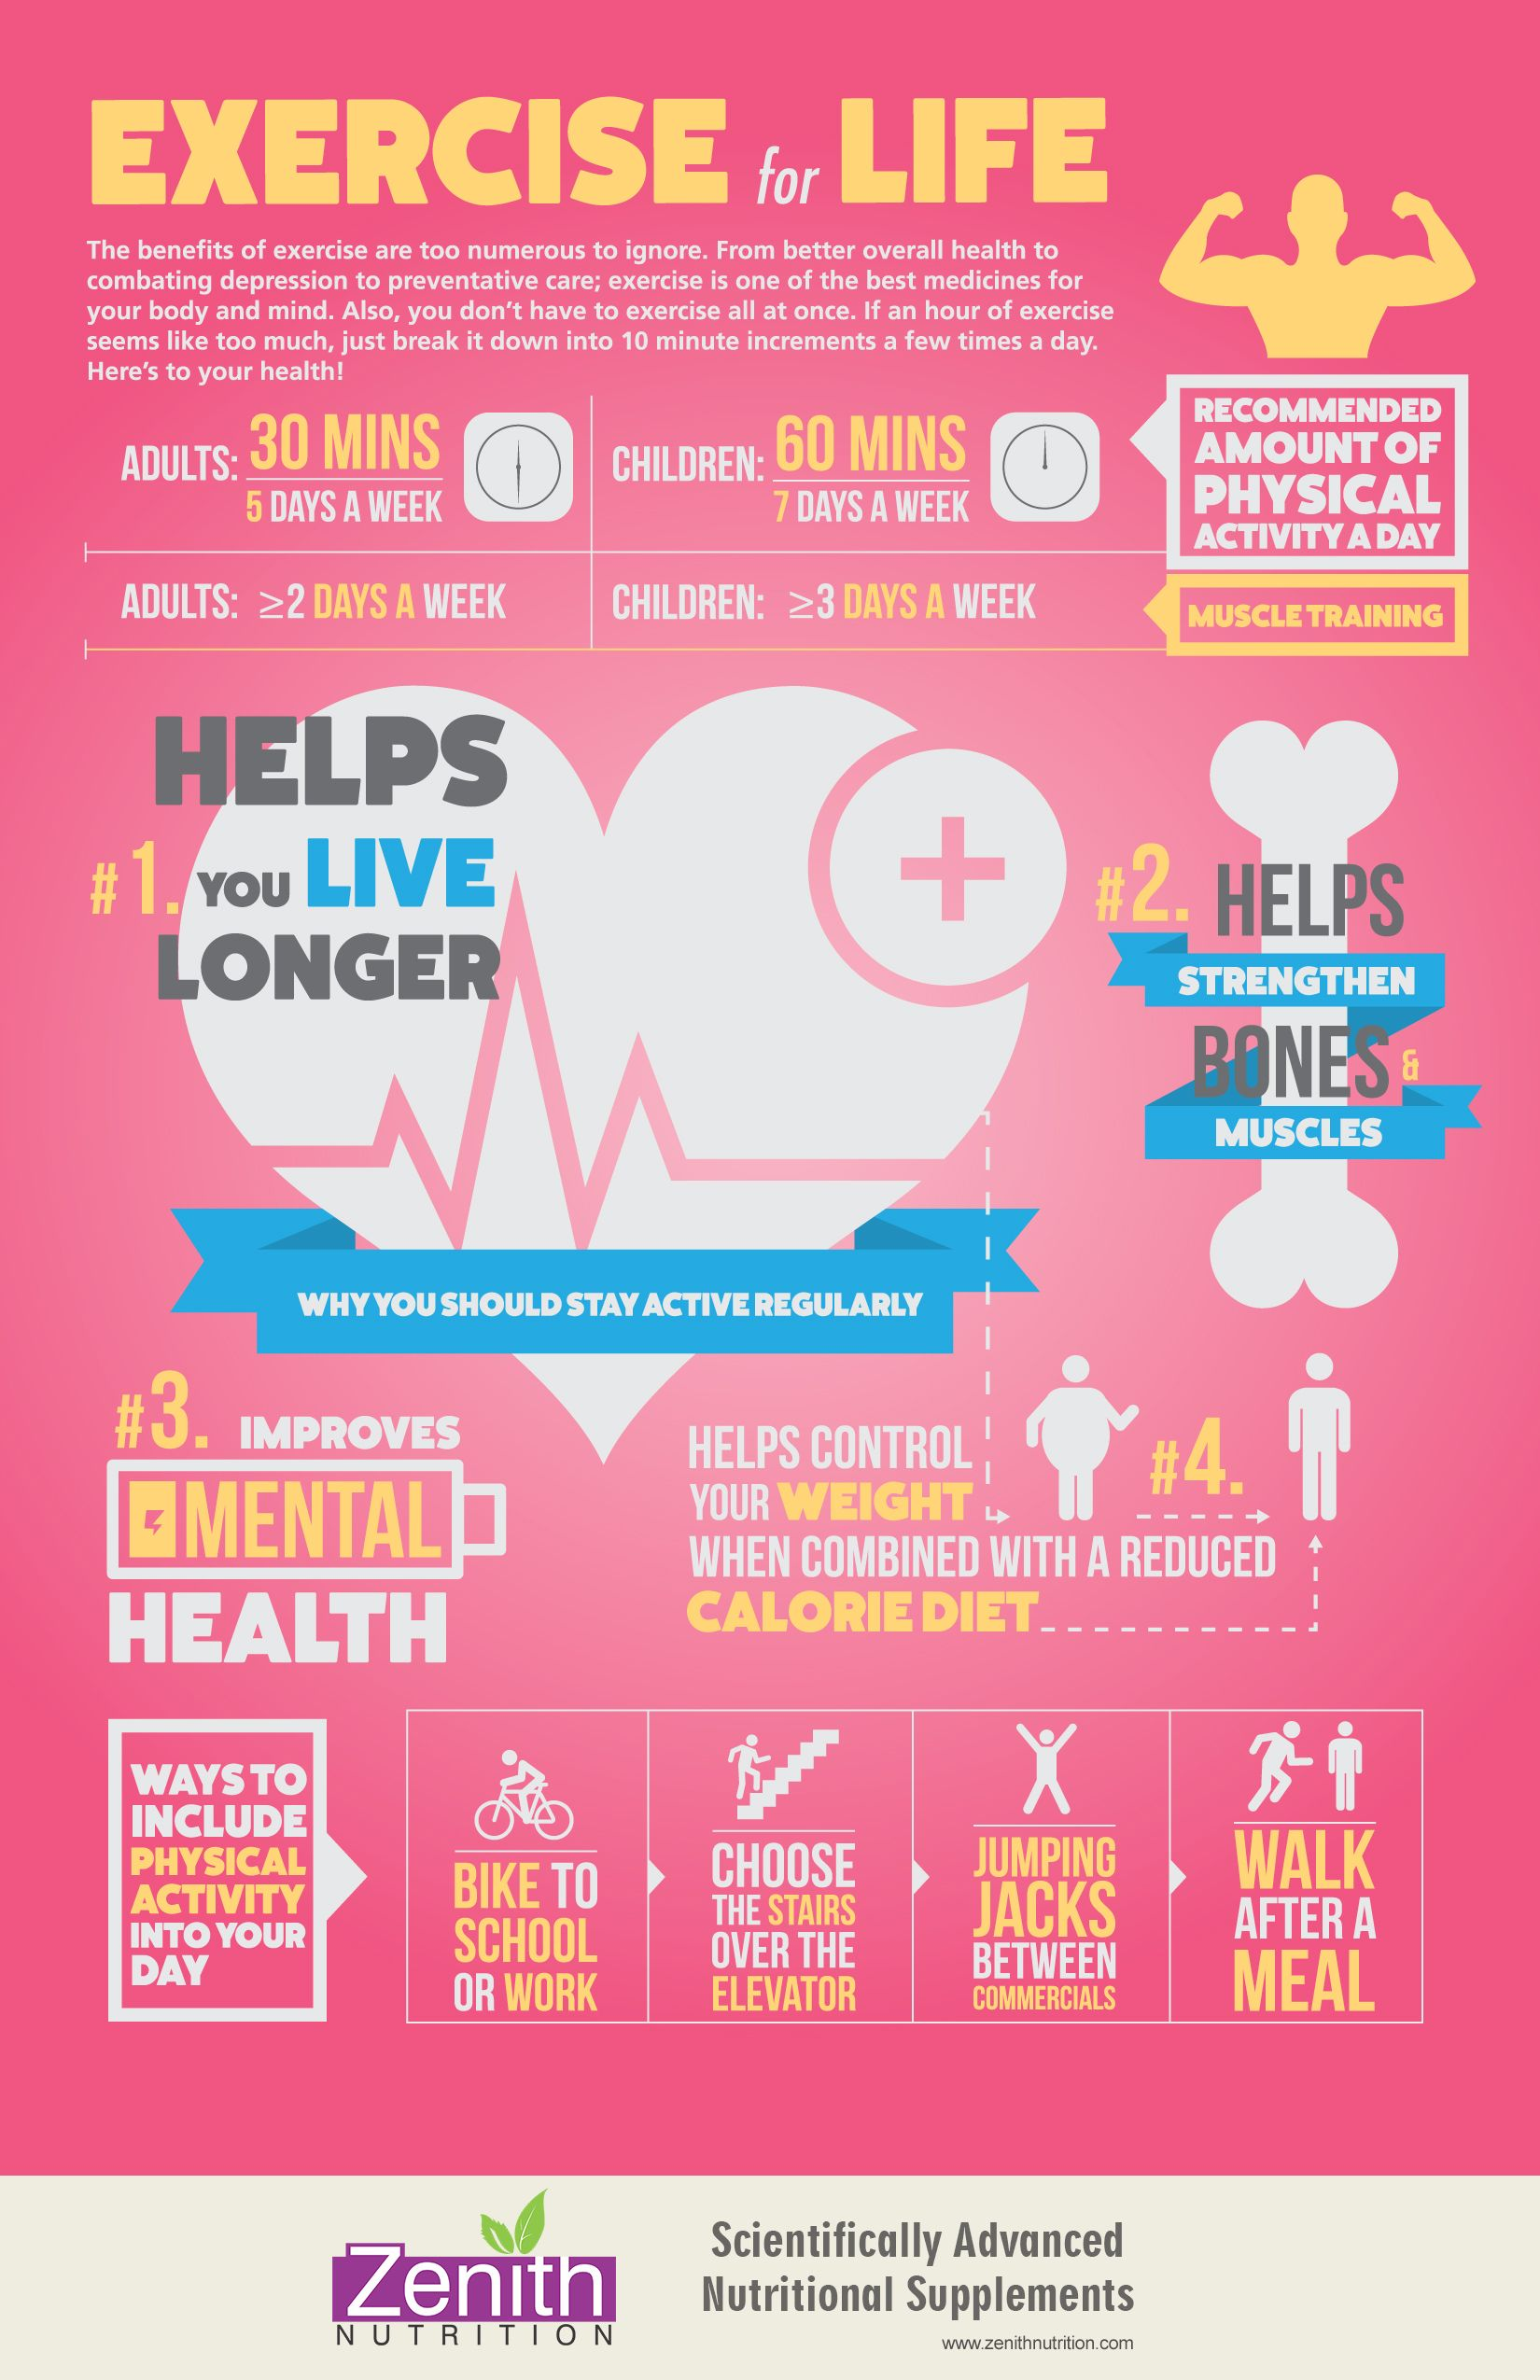 Exercise For Life. Recommended amount of physical  activity a day. Muscle training. Helps you live longer, helps strengthen bones & muscles, improves mental health, helps control your weight when combined with a reduced calorie diet. Ways to include physical activity into your day. Best supplements from Zenith Nutrition. Health Supplements. Nutritional Supplements. Health Infographics